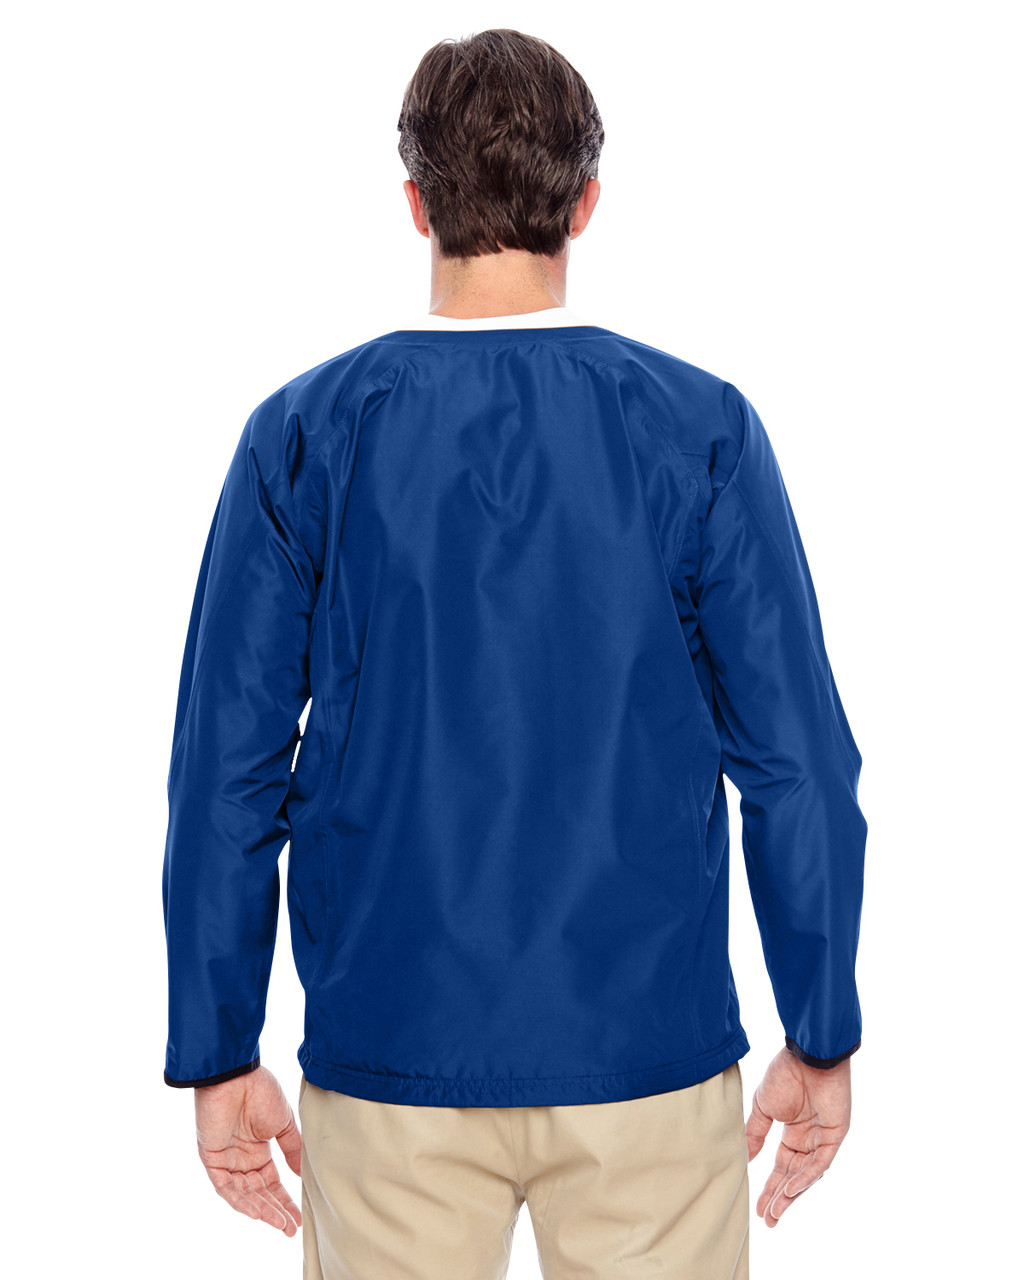 Sport Royal-back TT84 Team 365 Dominator Waterproof Windshirt